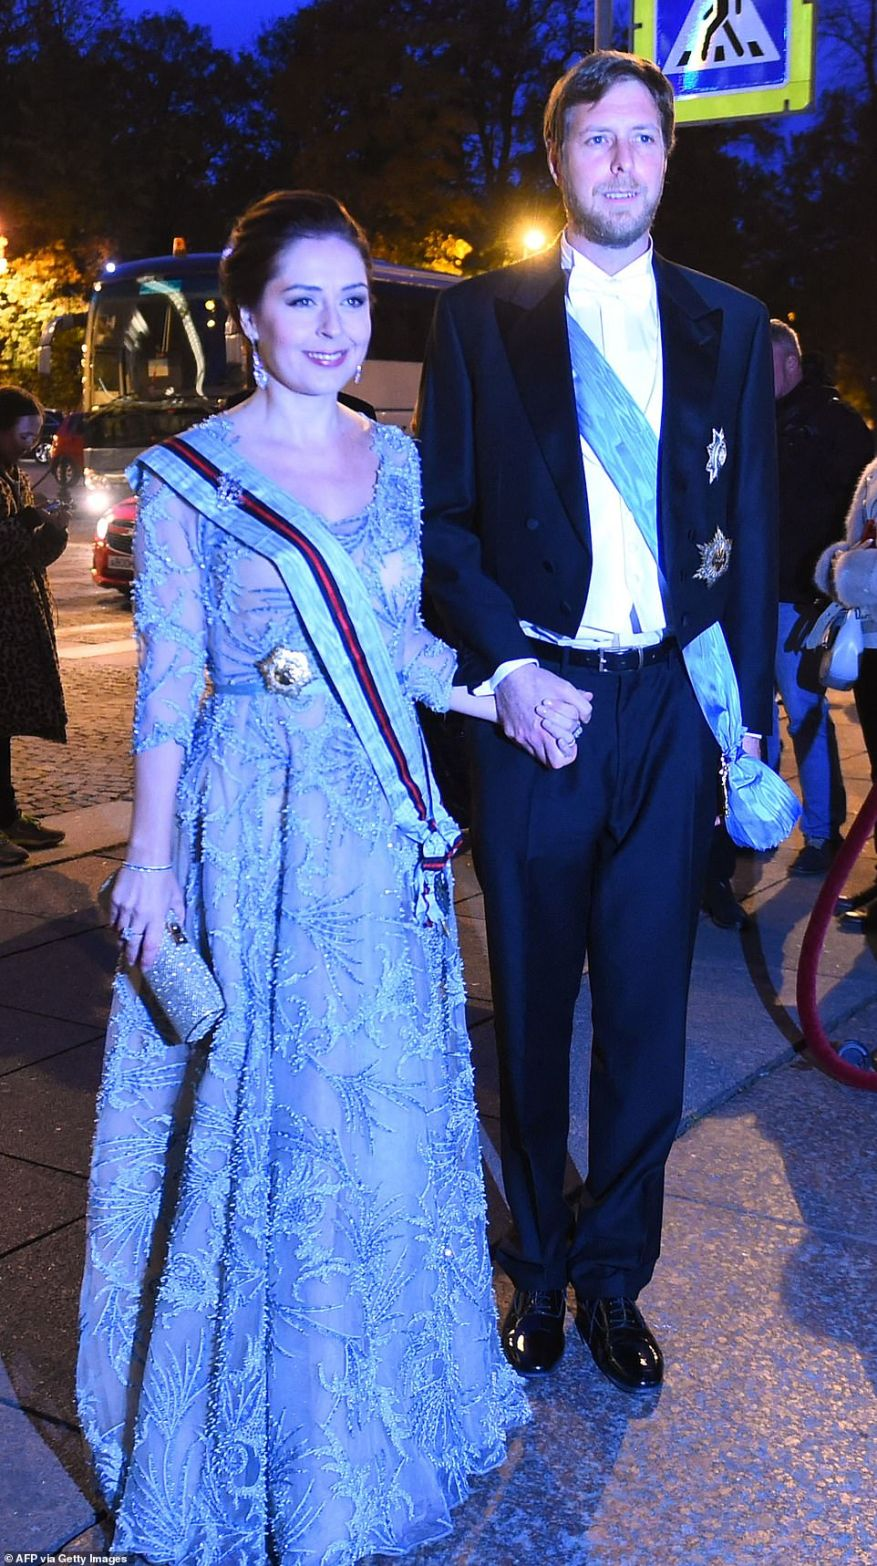 Albania's pretender to the throne, Crown Prince Leka Zogu II, the grandson of self-proclaimed King Zog and his wife Elia Zaharia arrive to attend the evening gala dinner